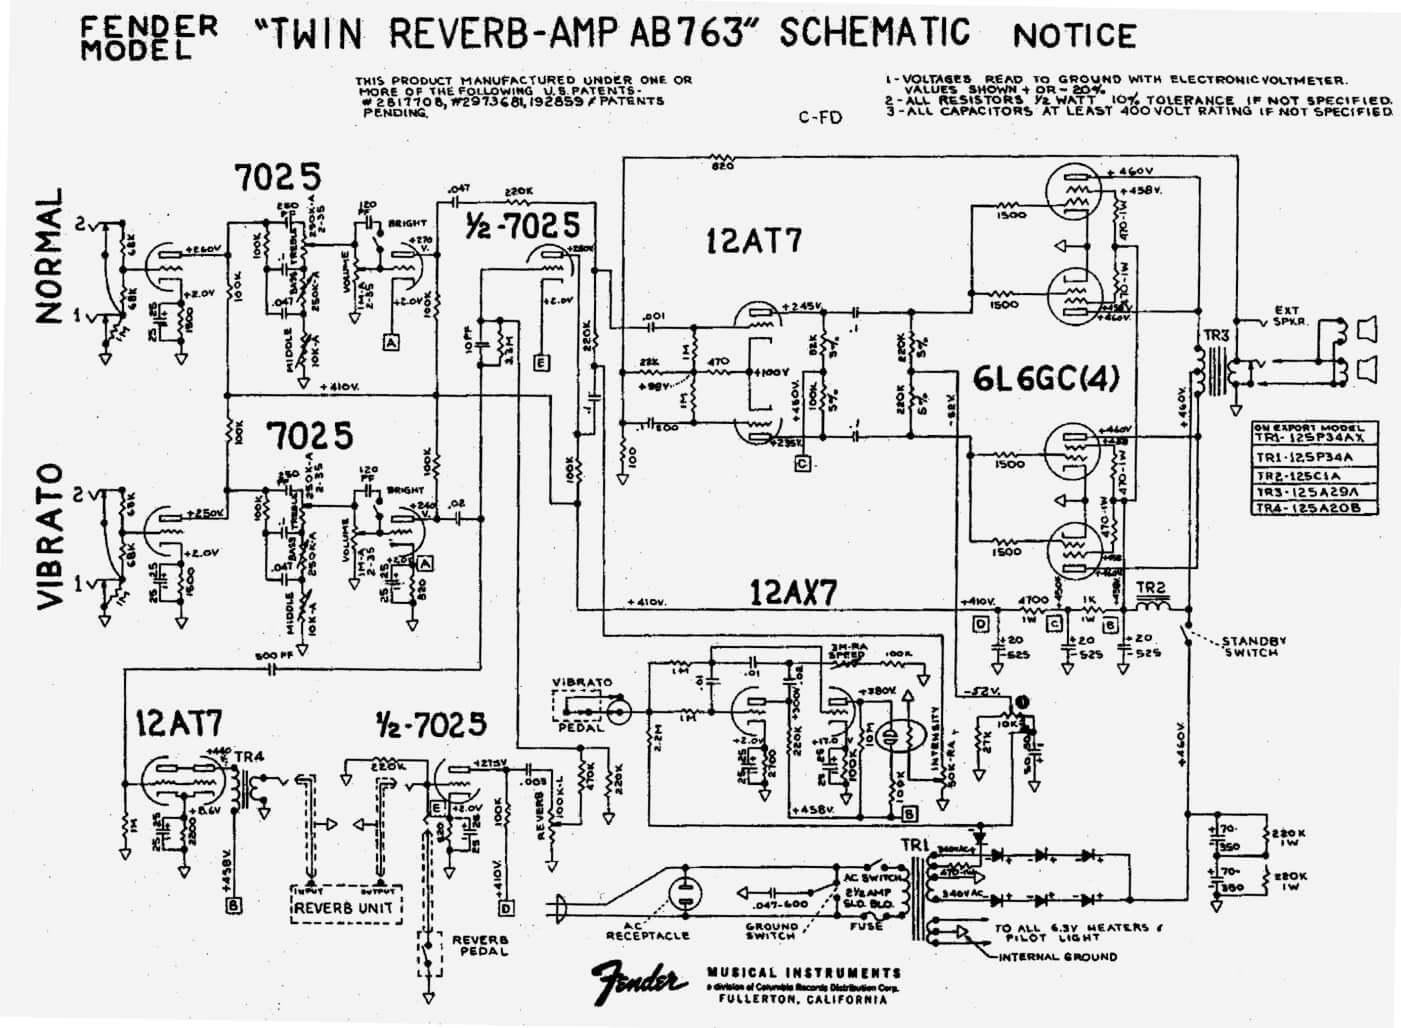 fender amp schematics fender pickup wiring diagram fender twin reverb ab763 schematic